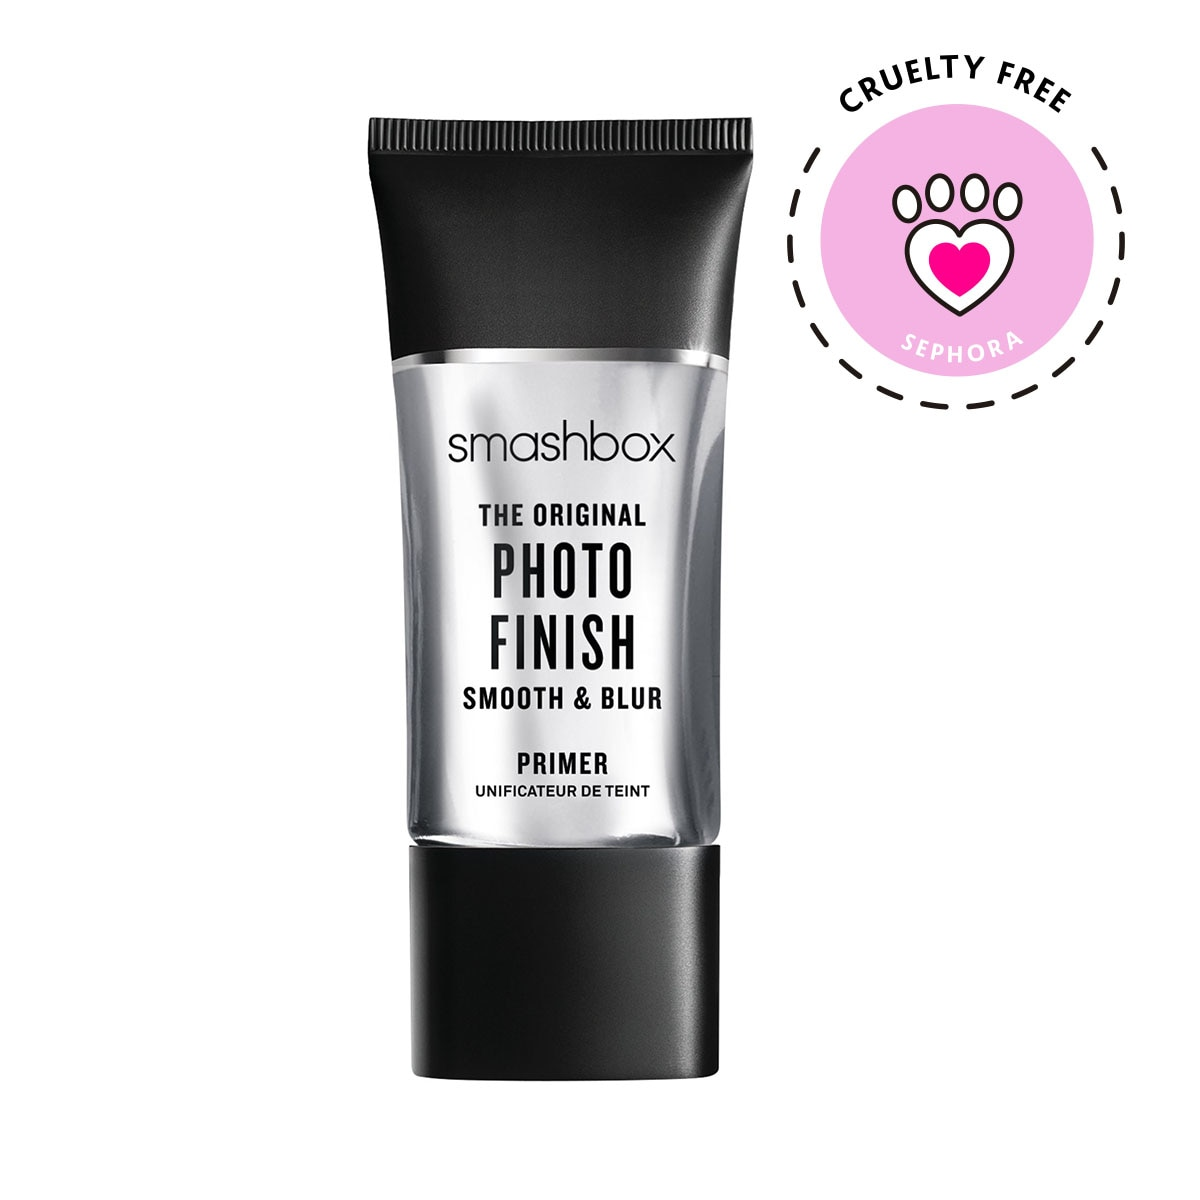 THE ORIGINAL PHOTO FINISH SMOOTH & BLUR OIL-FREE PRIMER (PRIMER LIBRE DE ACEITE)